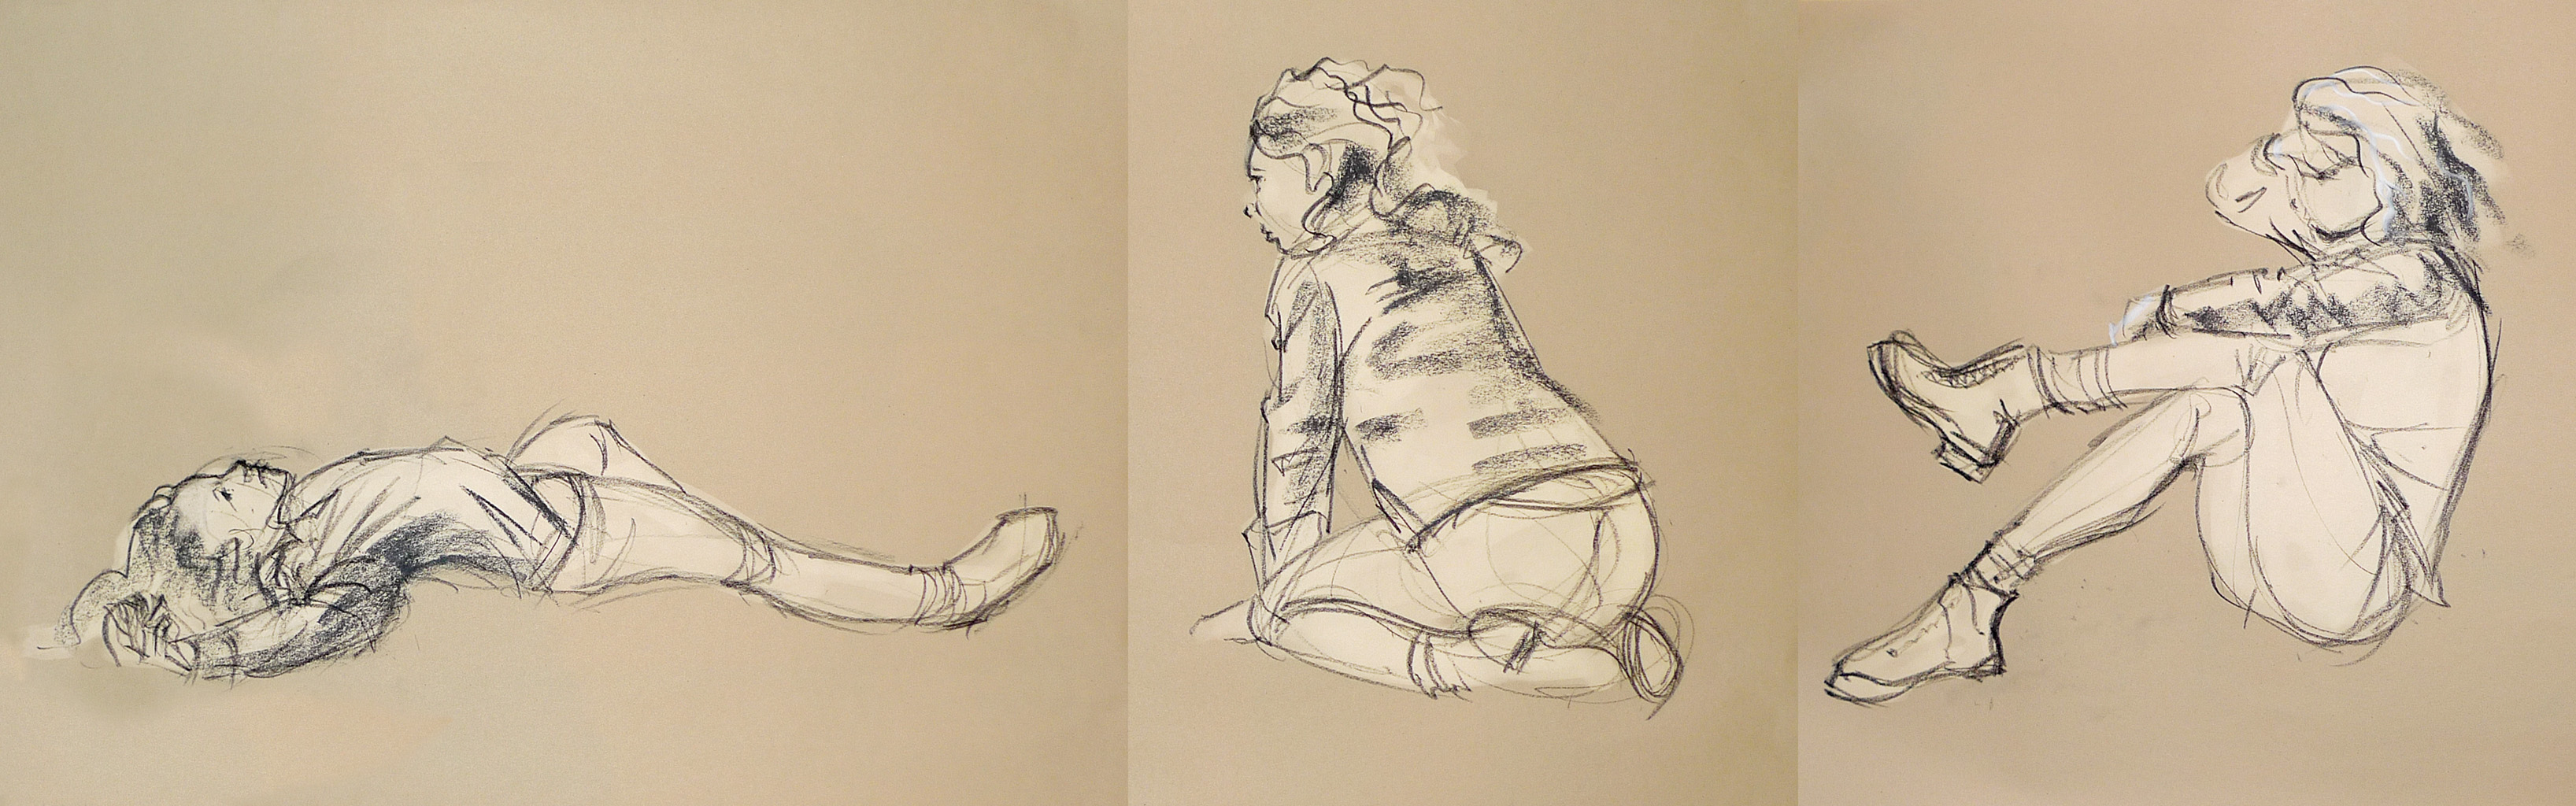 Life drawing - October 2017 by Gizmoatwork